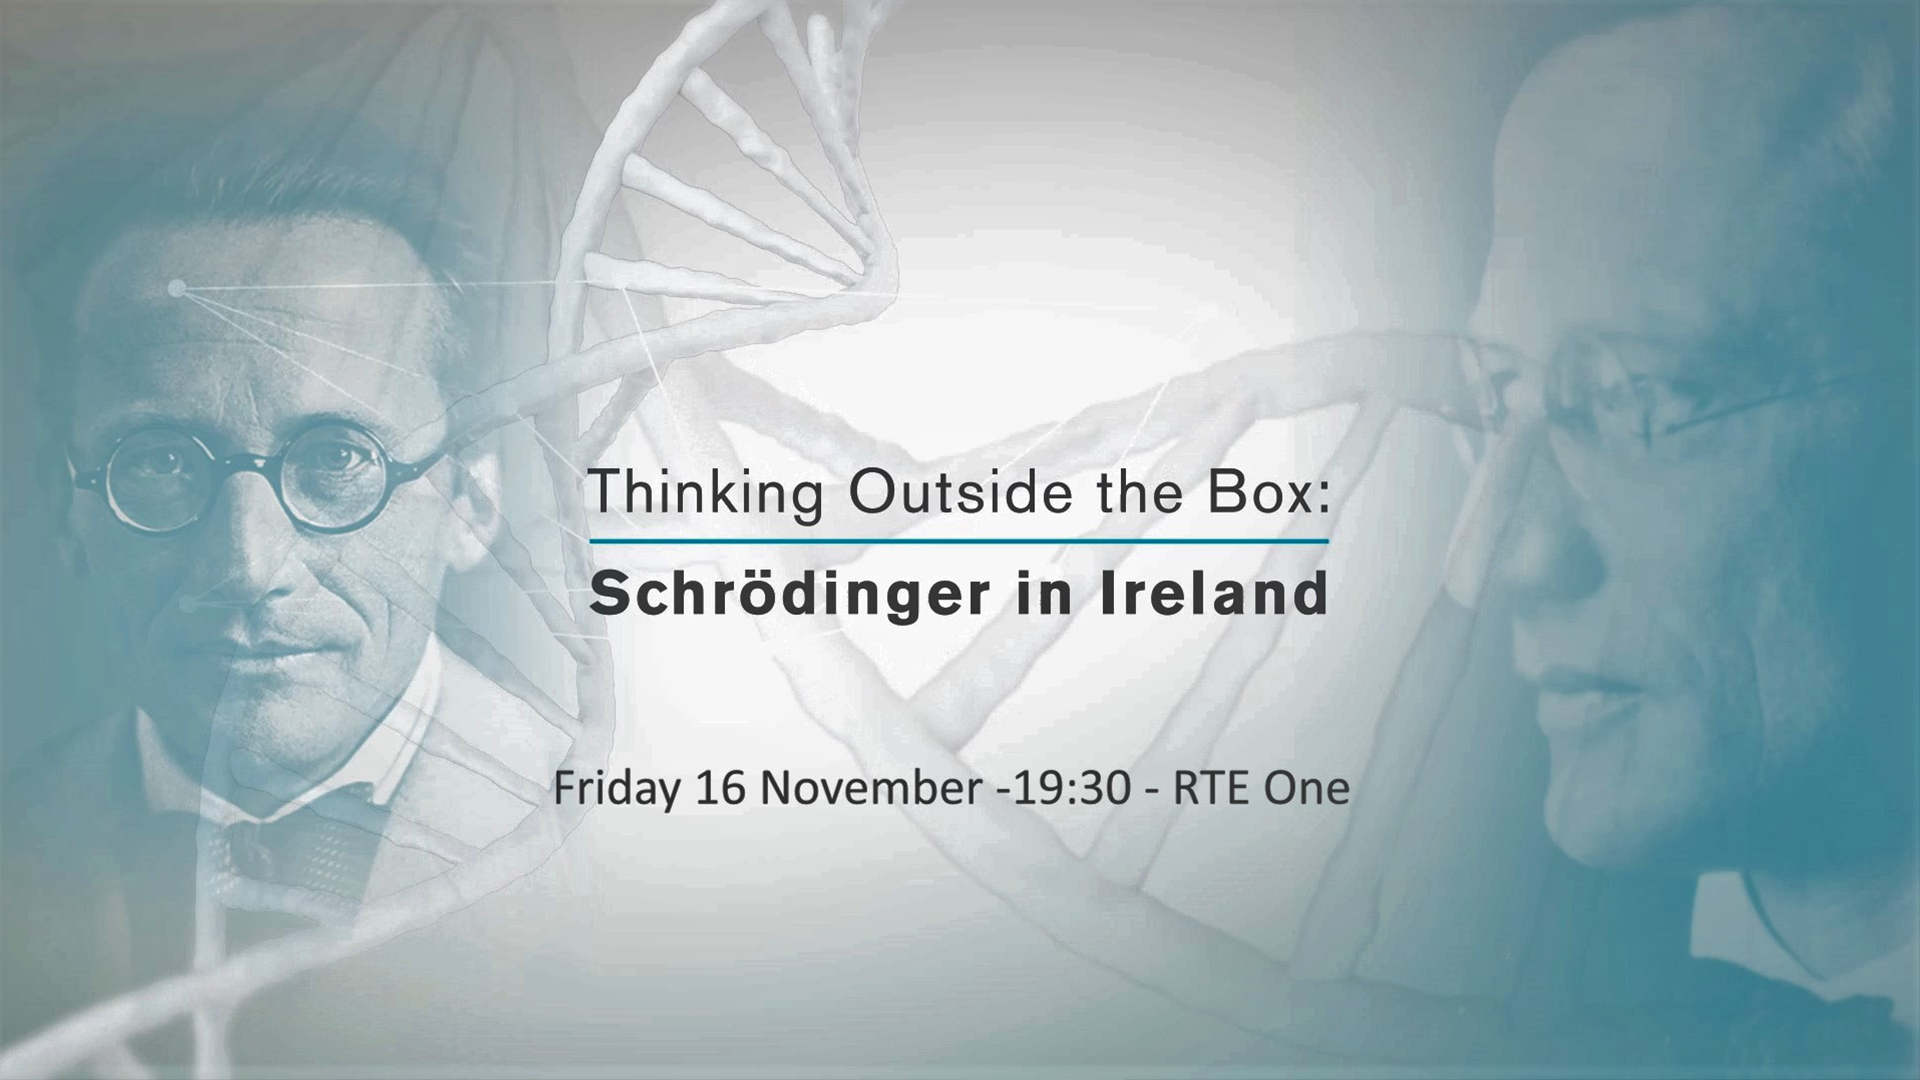 <span>Film</span>Thinking Outside the Box – Schrödinger in Ireland